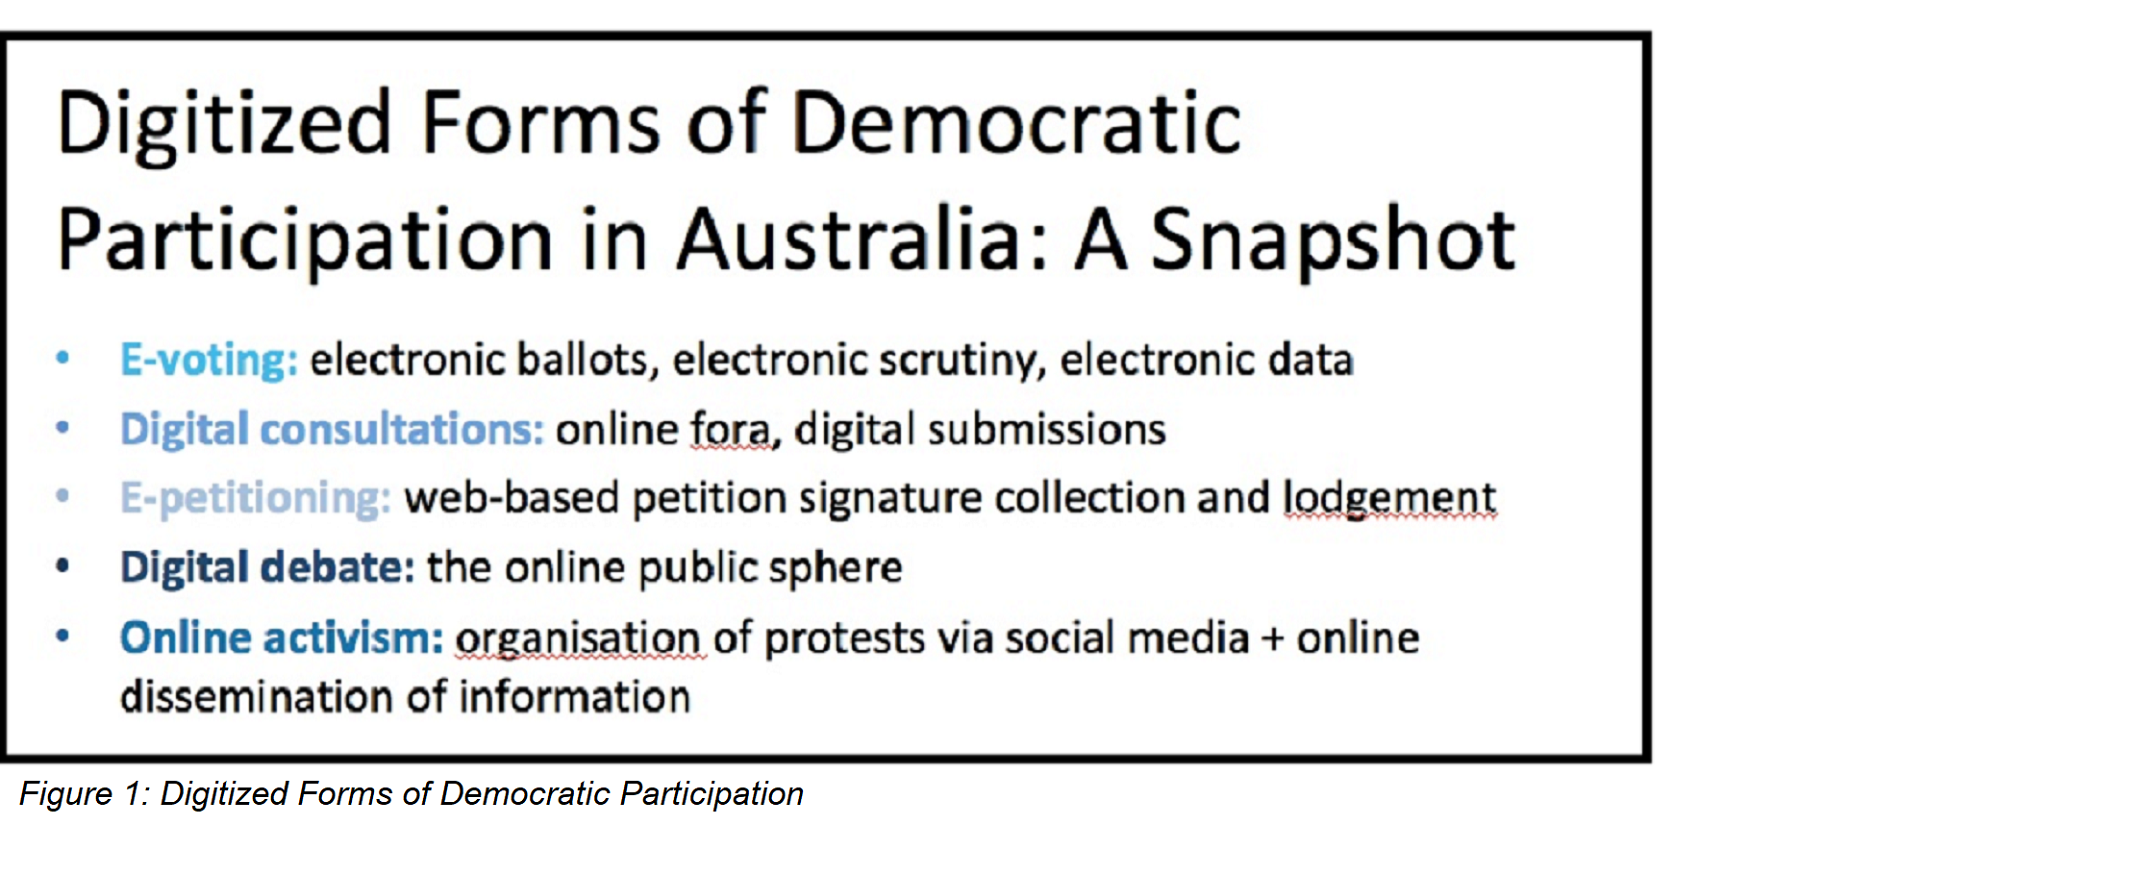 Figure 1: Digitized forms of democratic participation